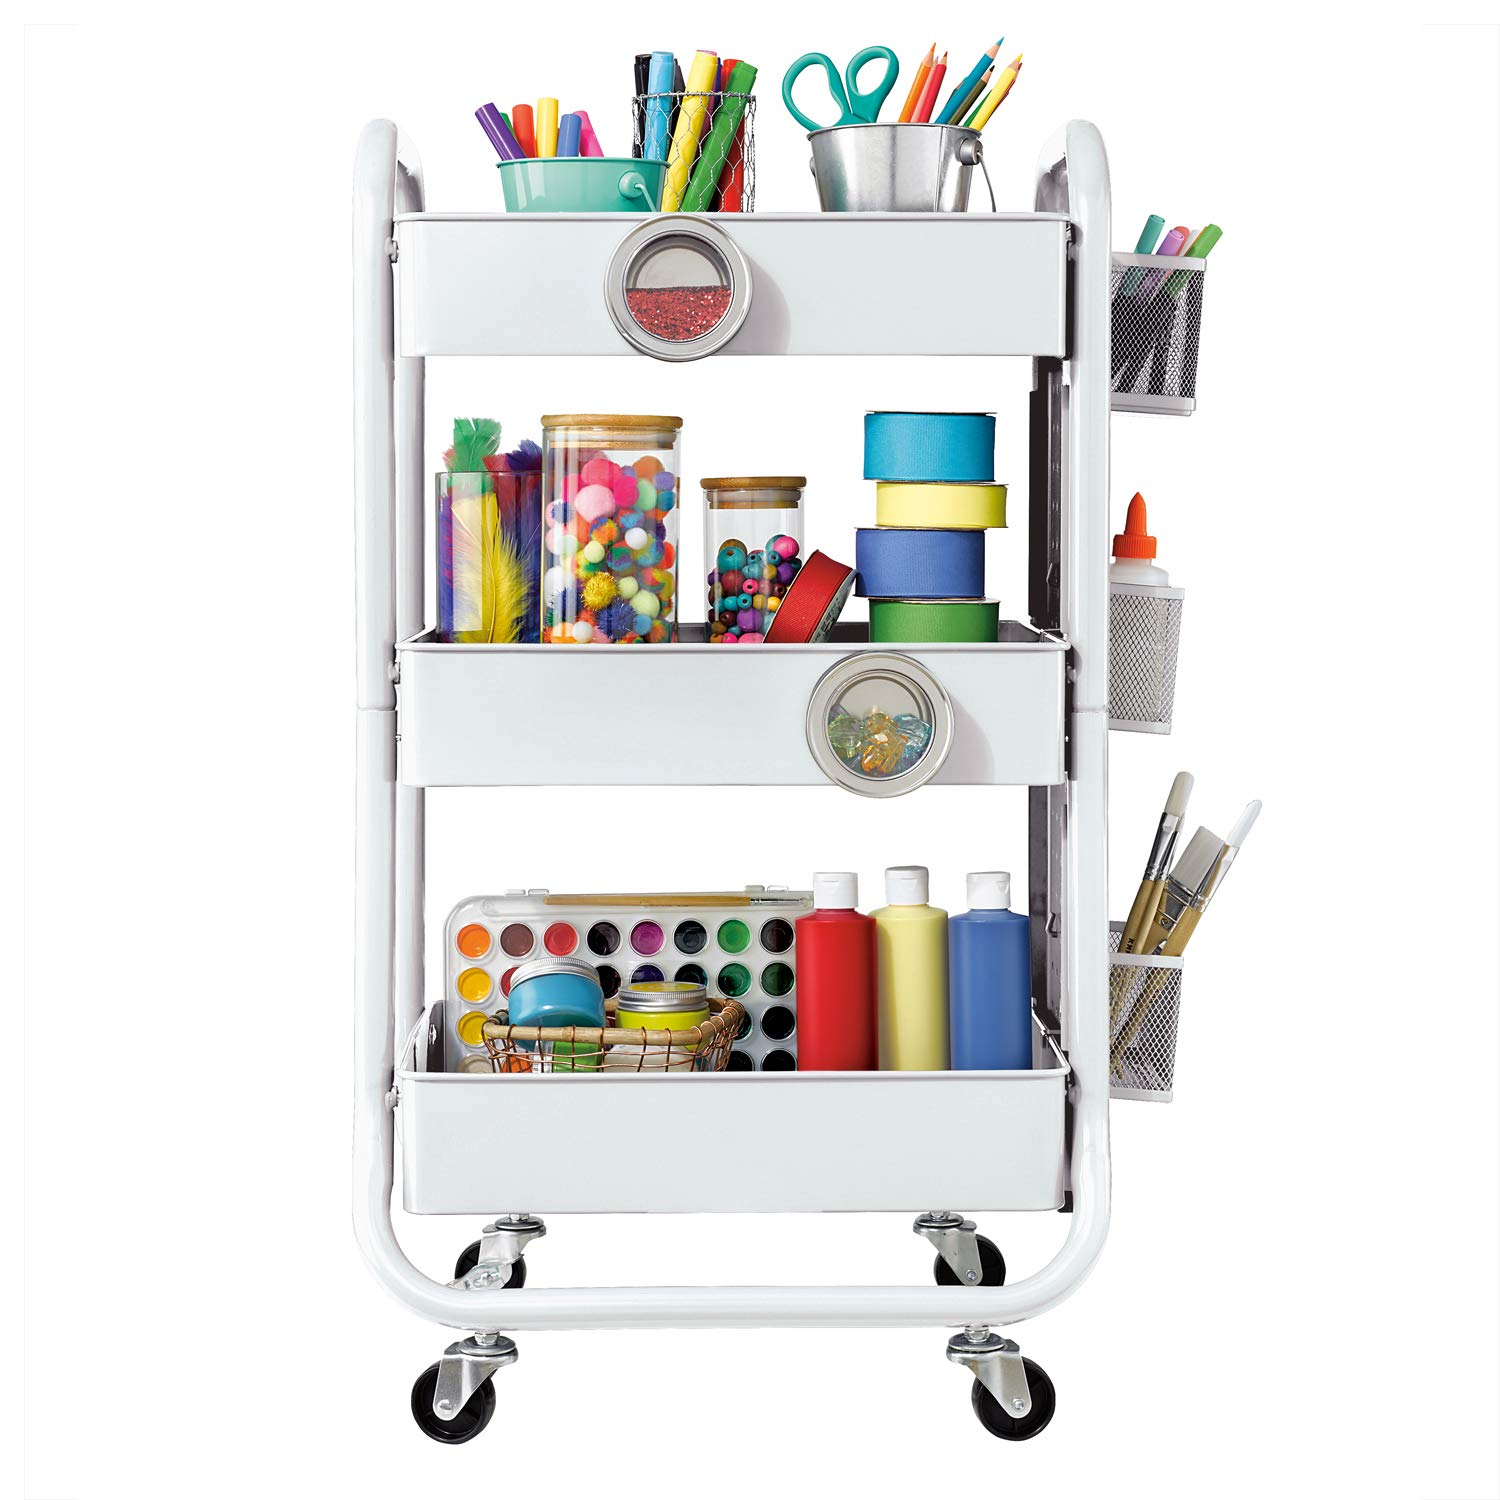 DESIGNA Utility Cart, 3 Tier Metal Rolling Cart with Utility Handle and Extra Storage Accessories, White by DESIGNA